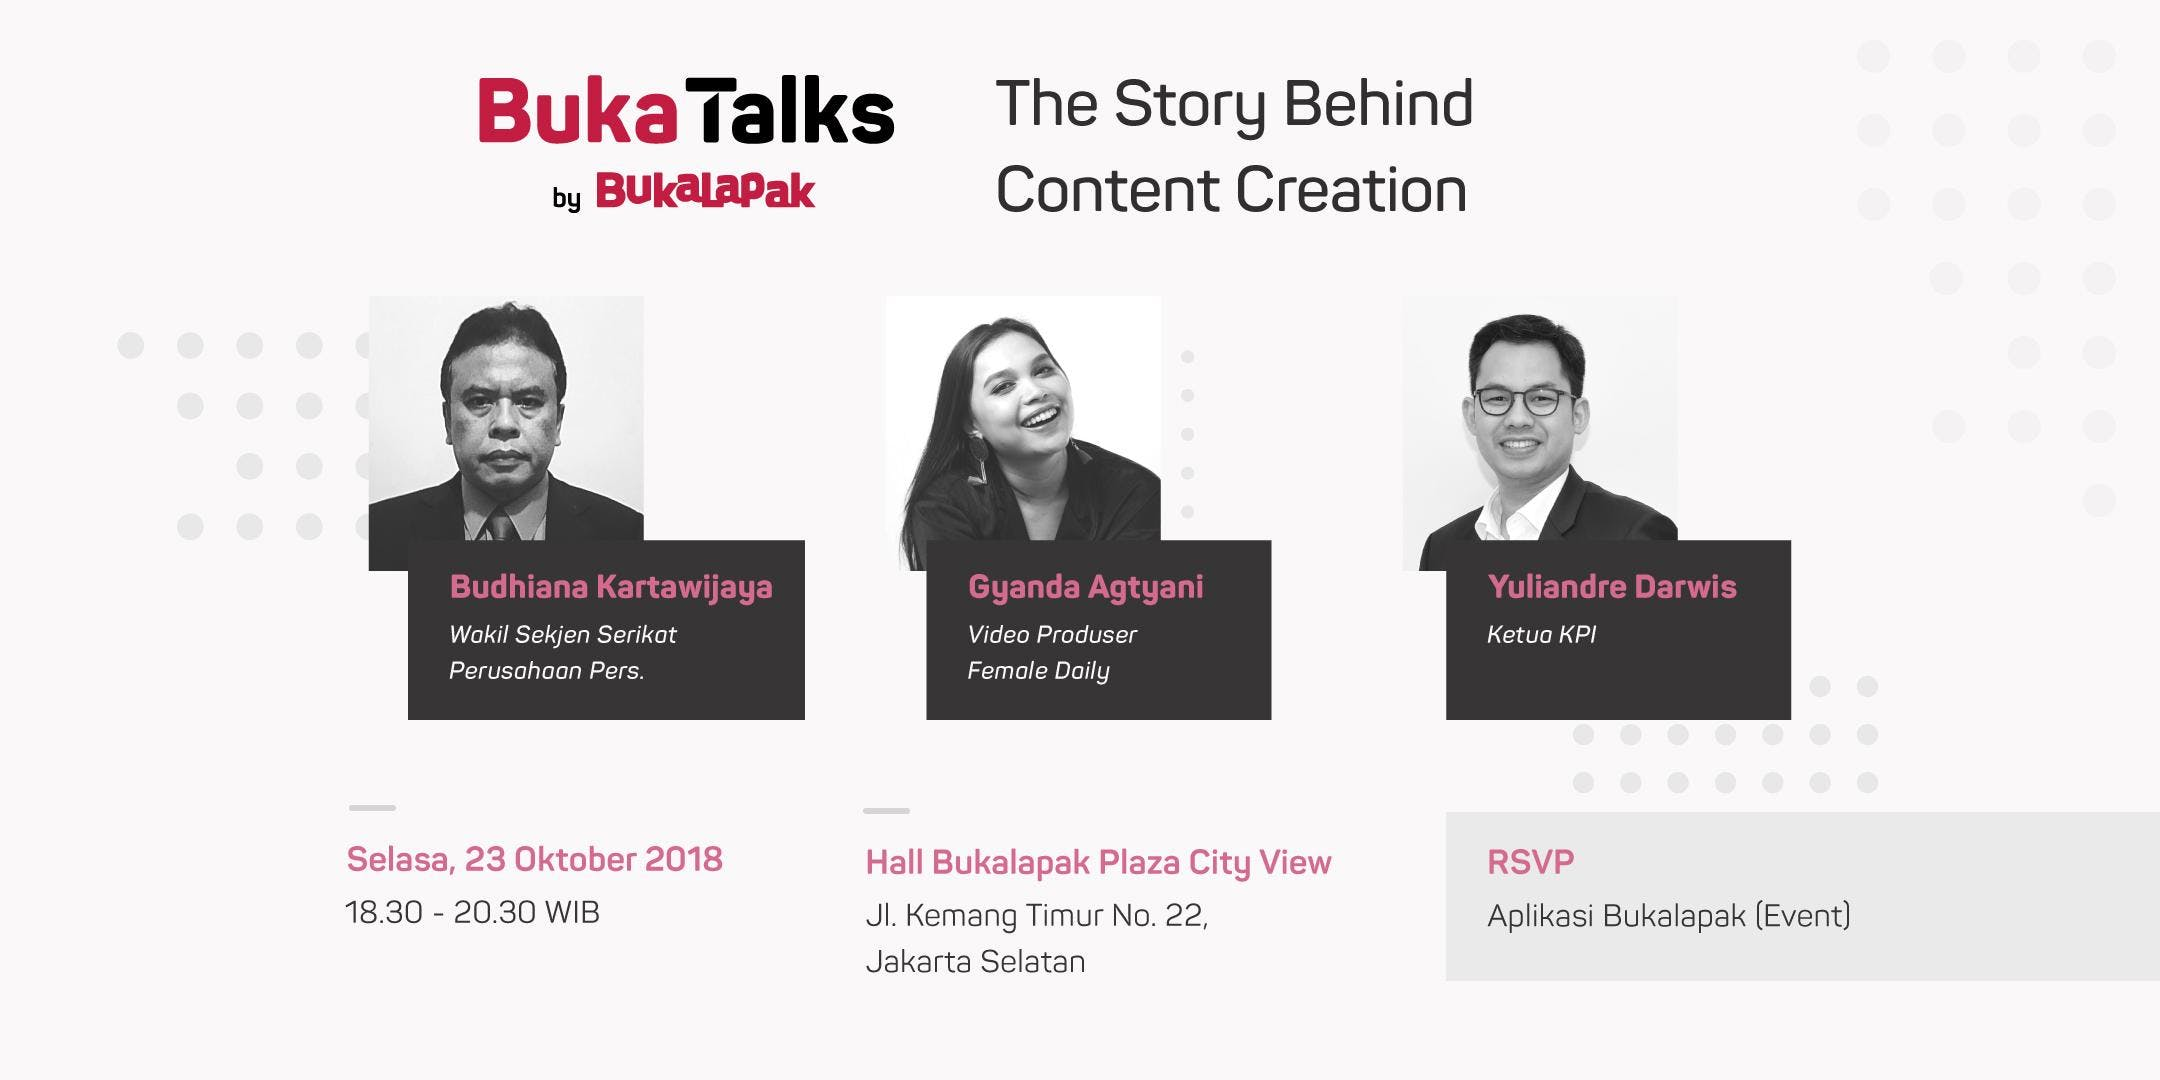 BukaTalks: The Story Behind Content Creation